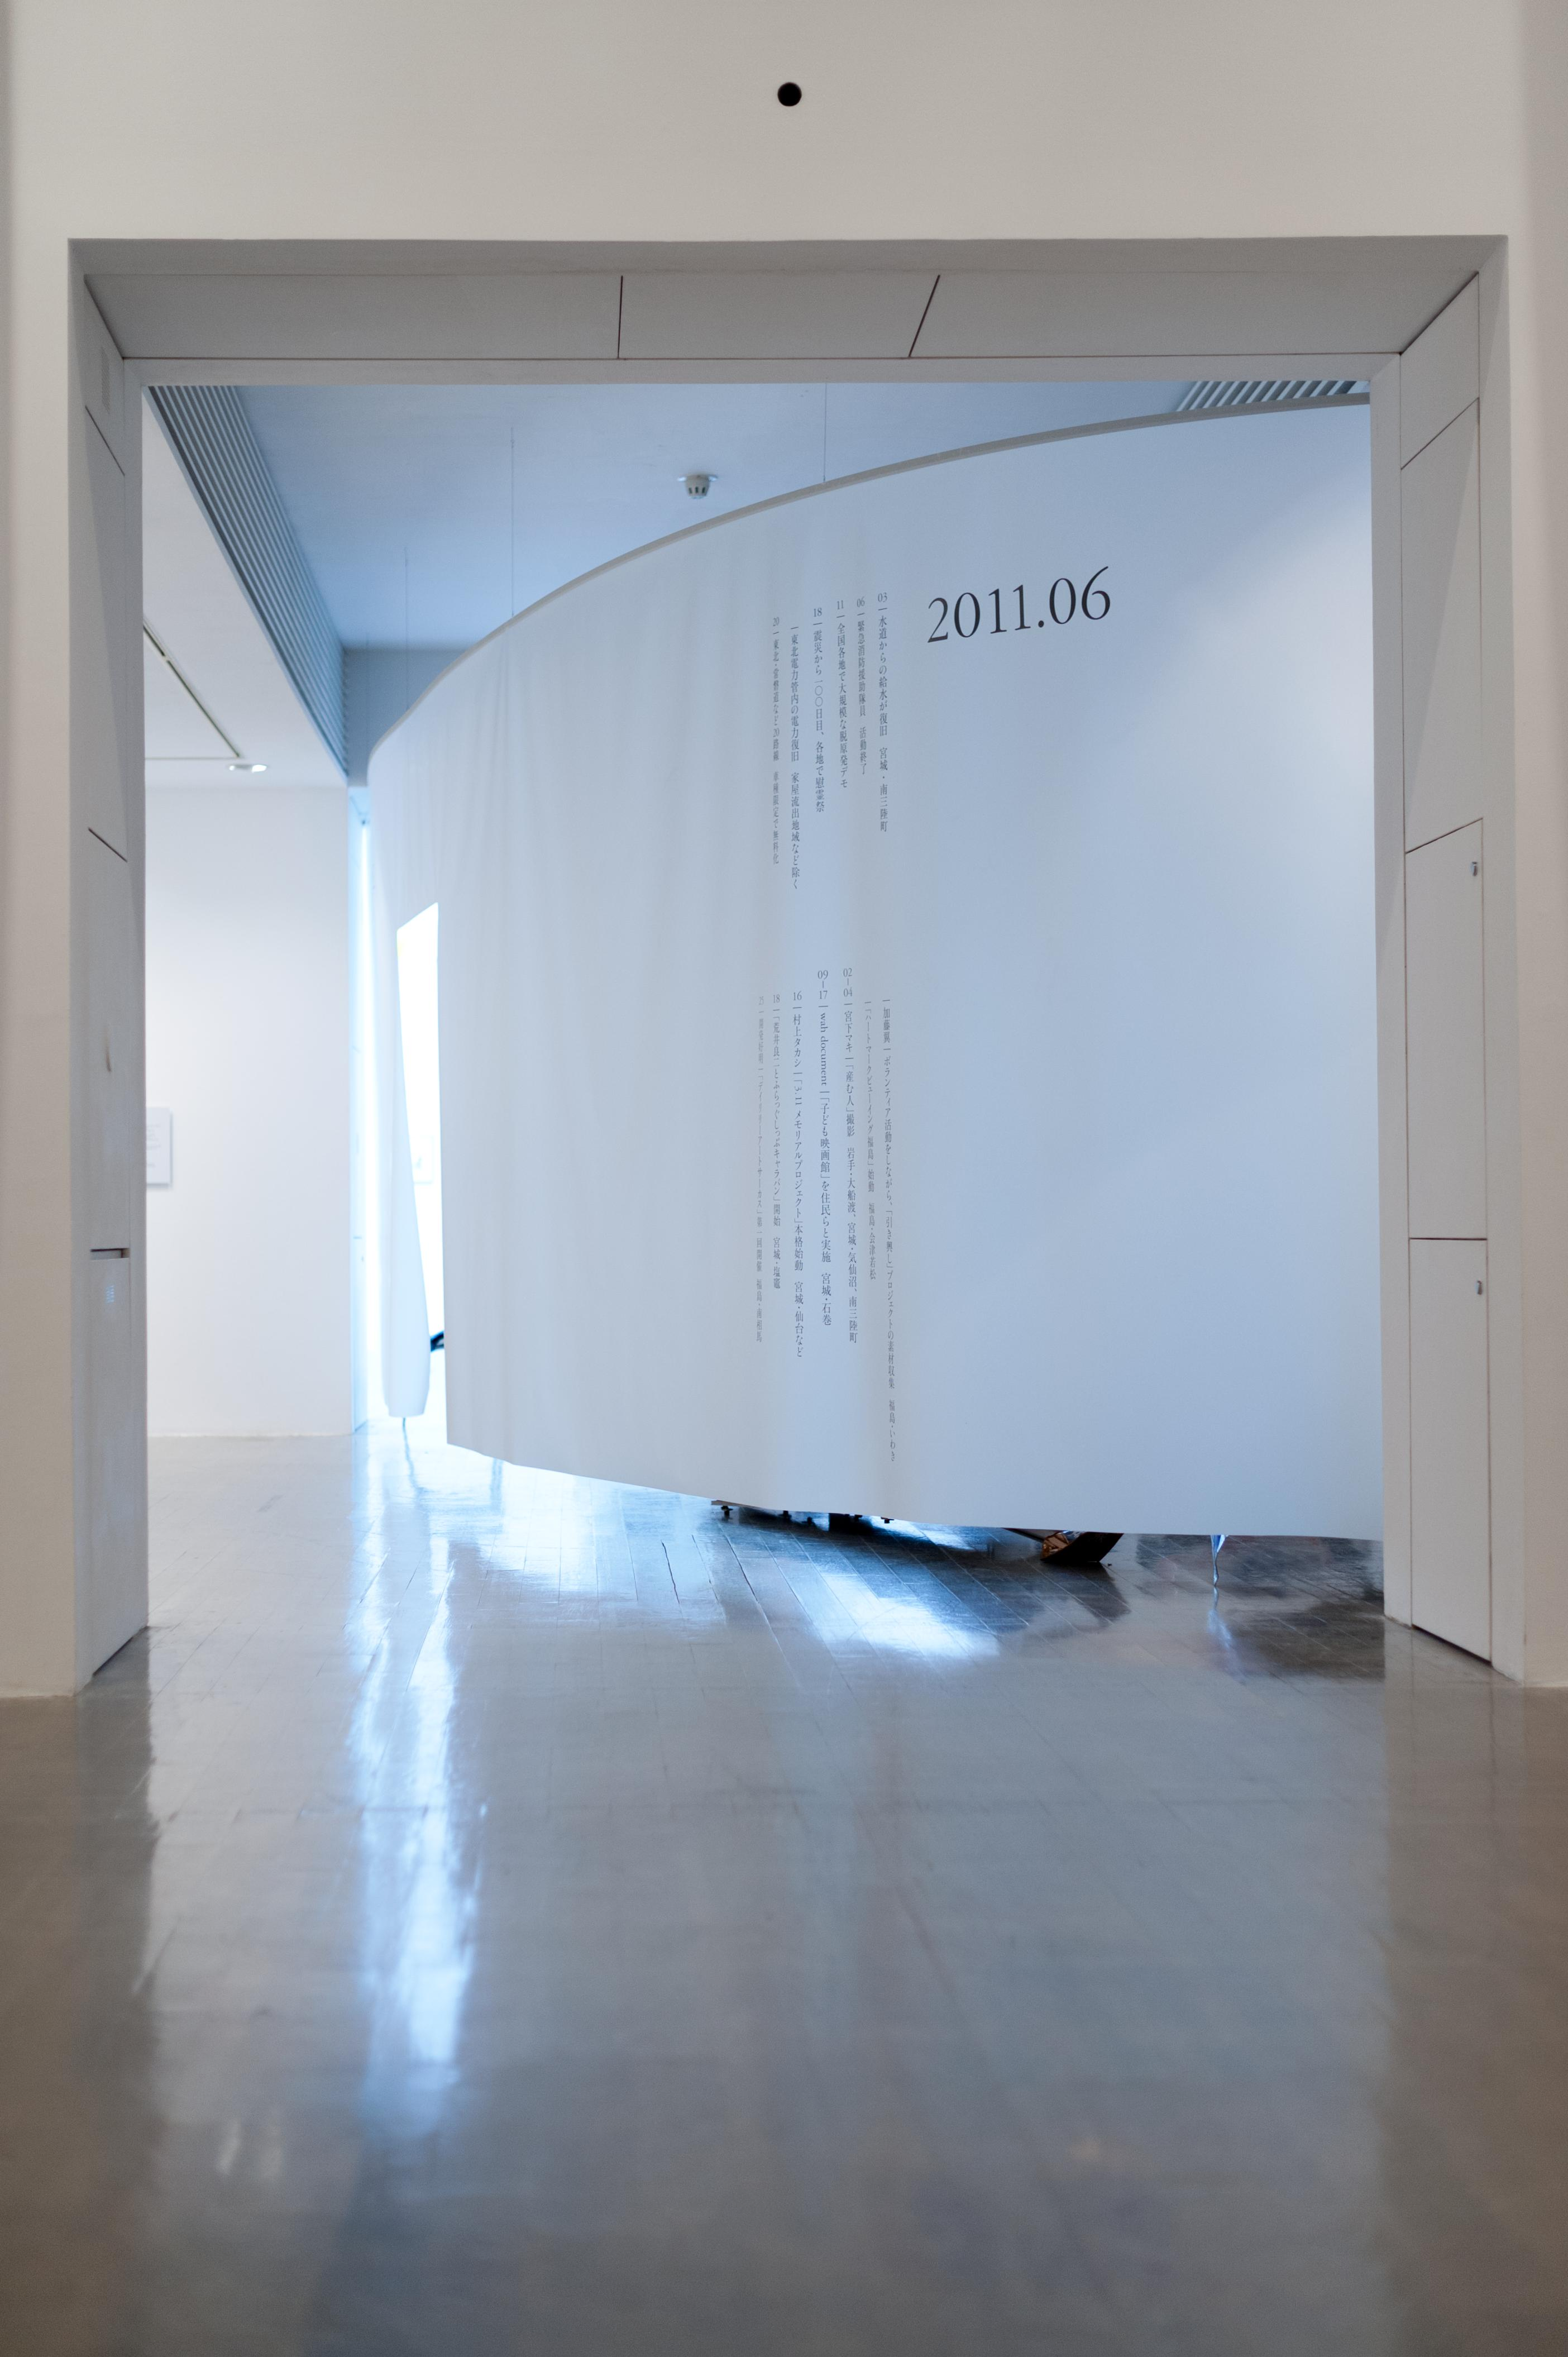 Artists and the Disaster | Documentation in Progress [exhibition design]